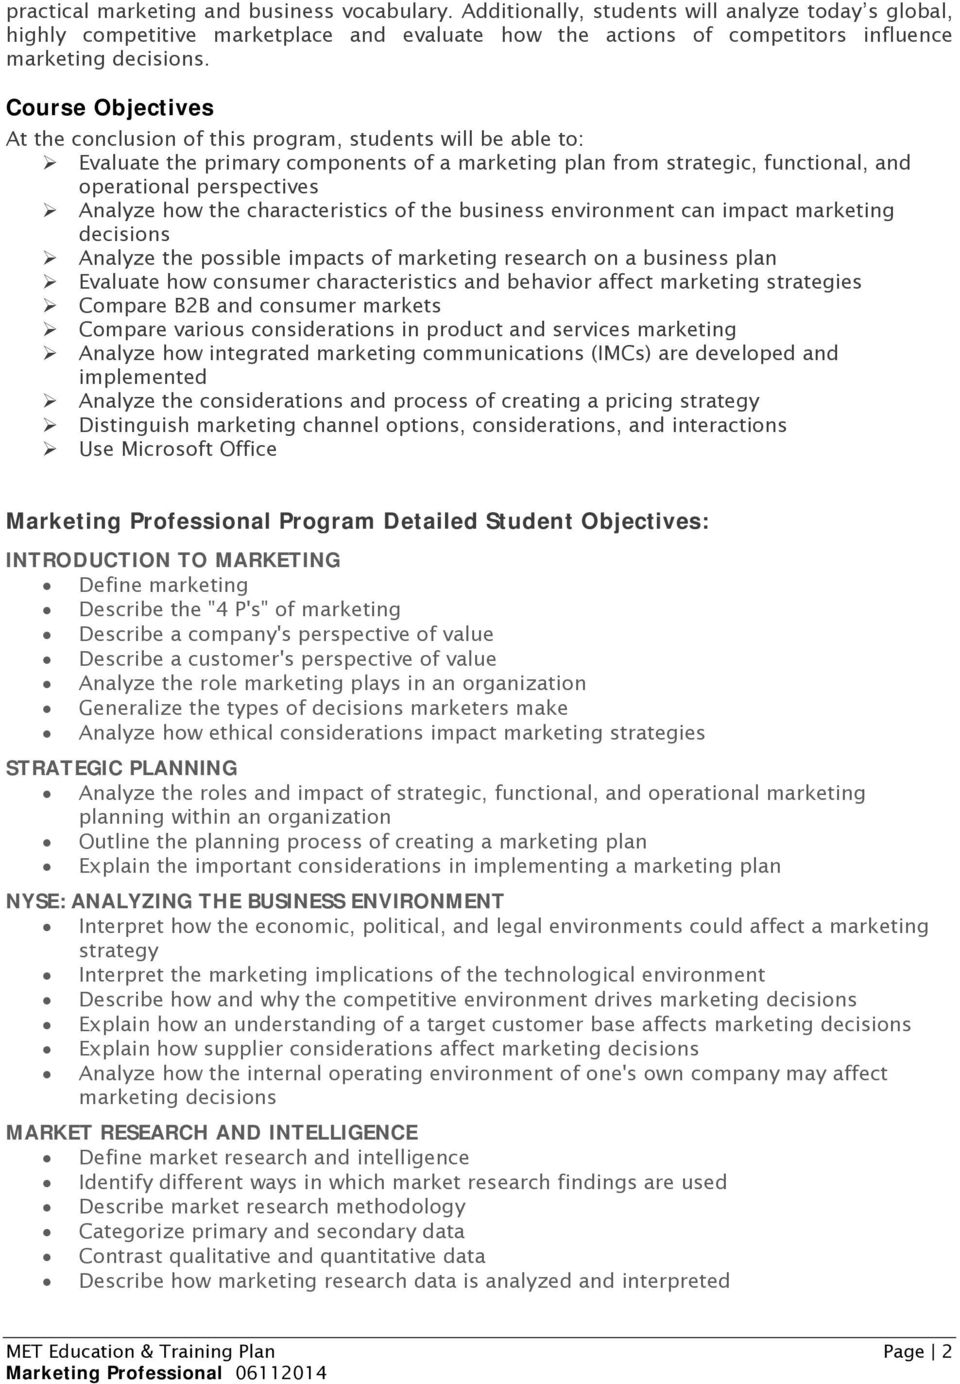 Course Objectives At the conclusion of this program, students will be able to: Evaluate the primary components of a marketing plan from strategic, functional, and operational perspectives Analyze how